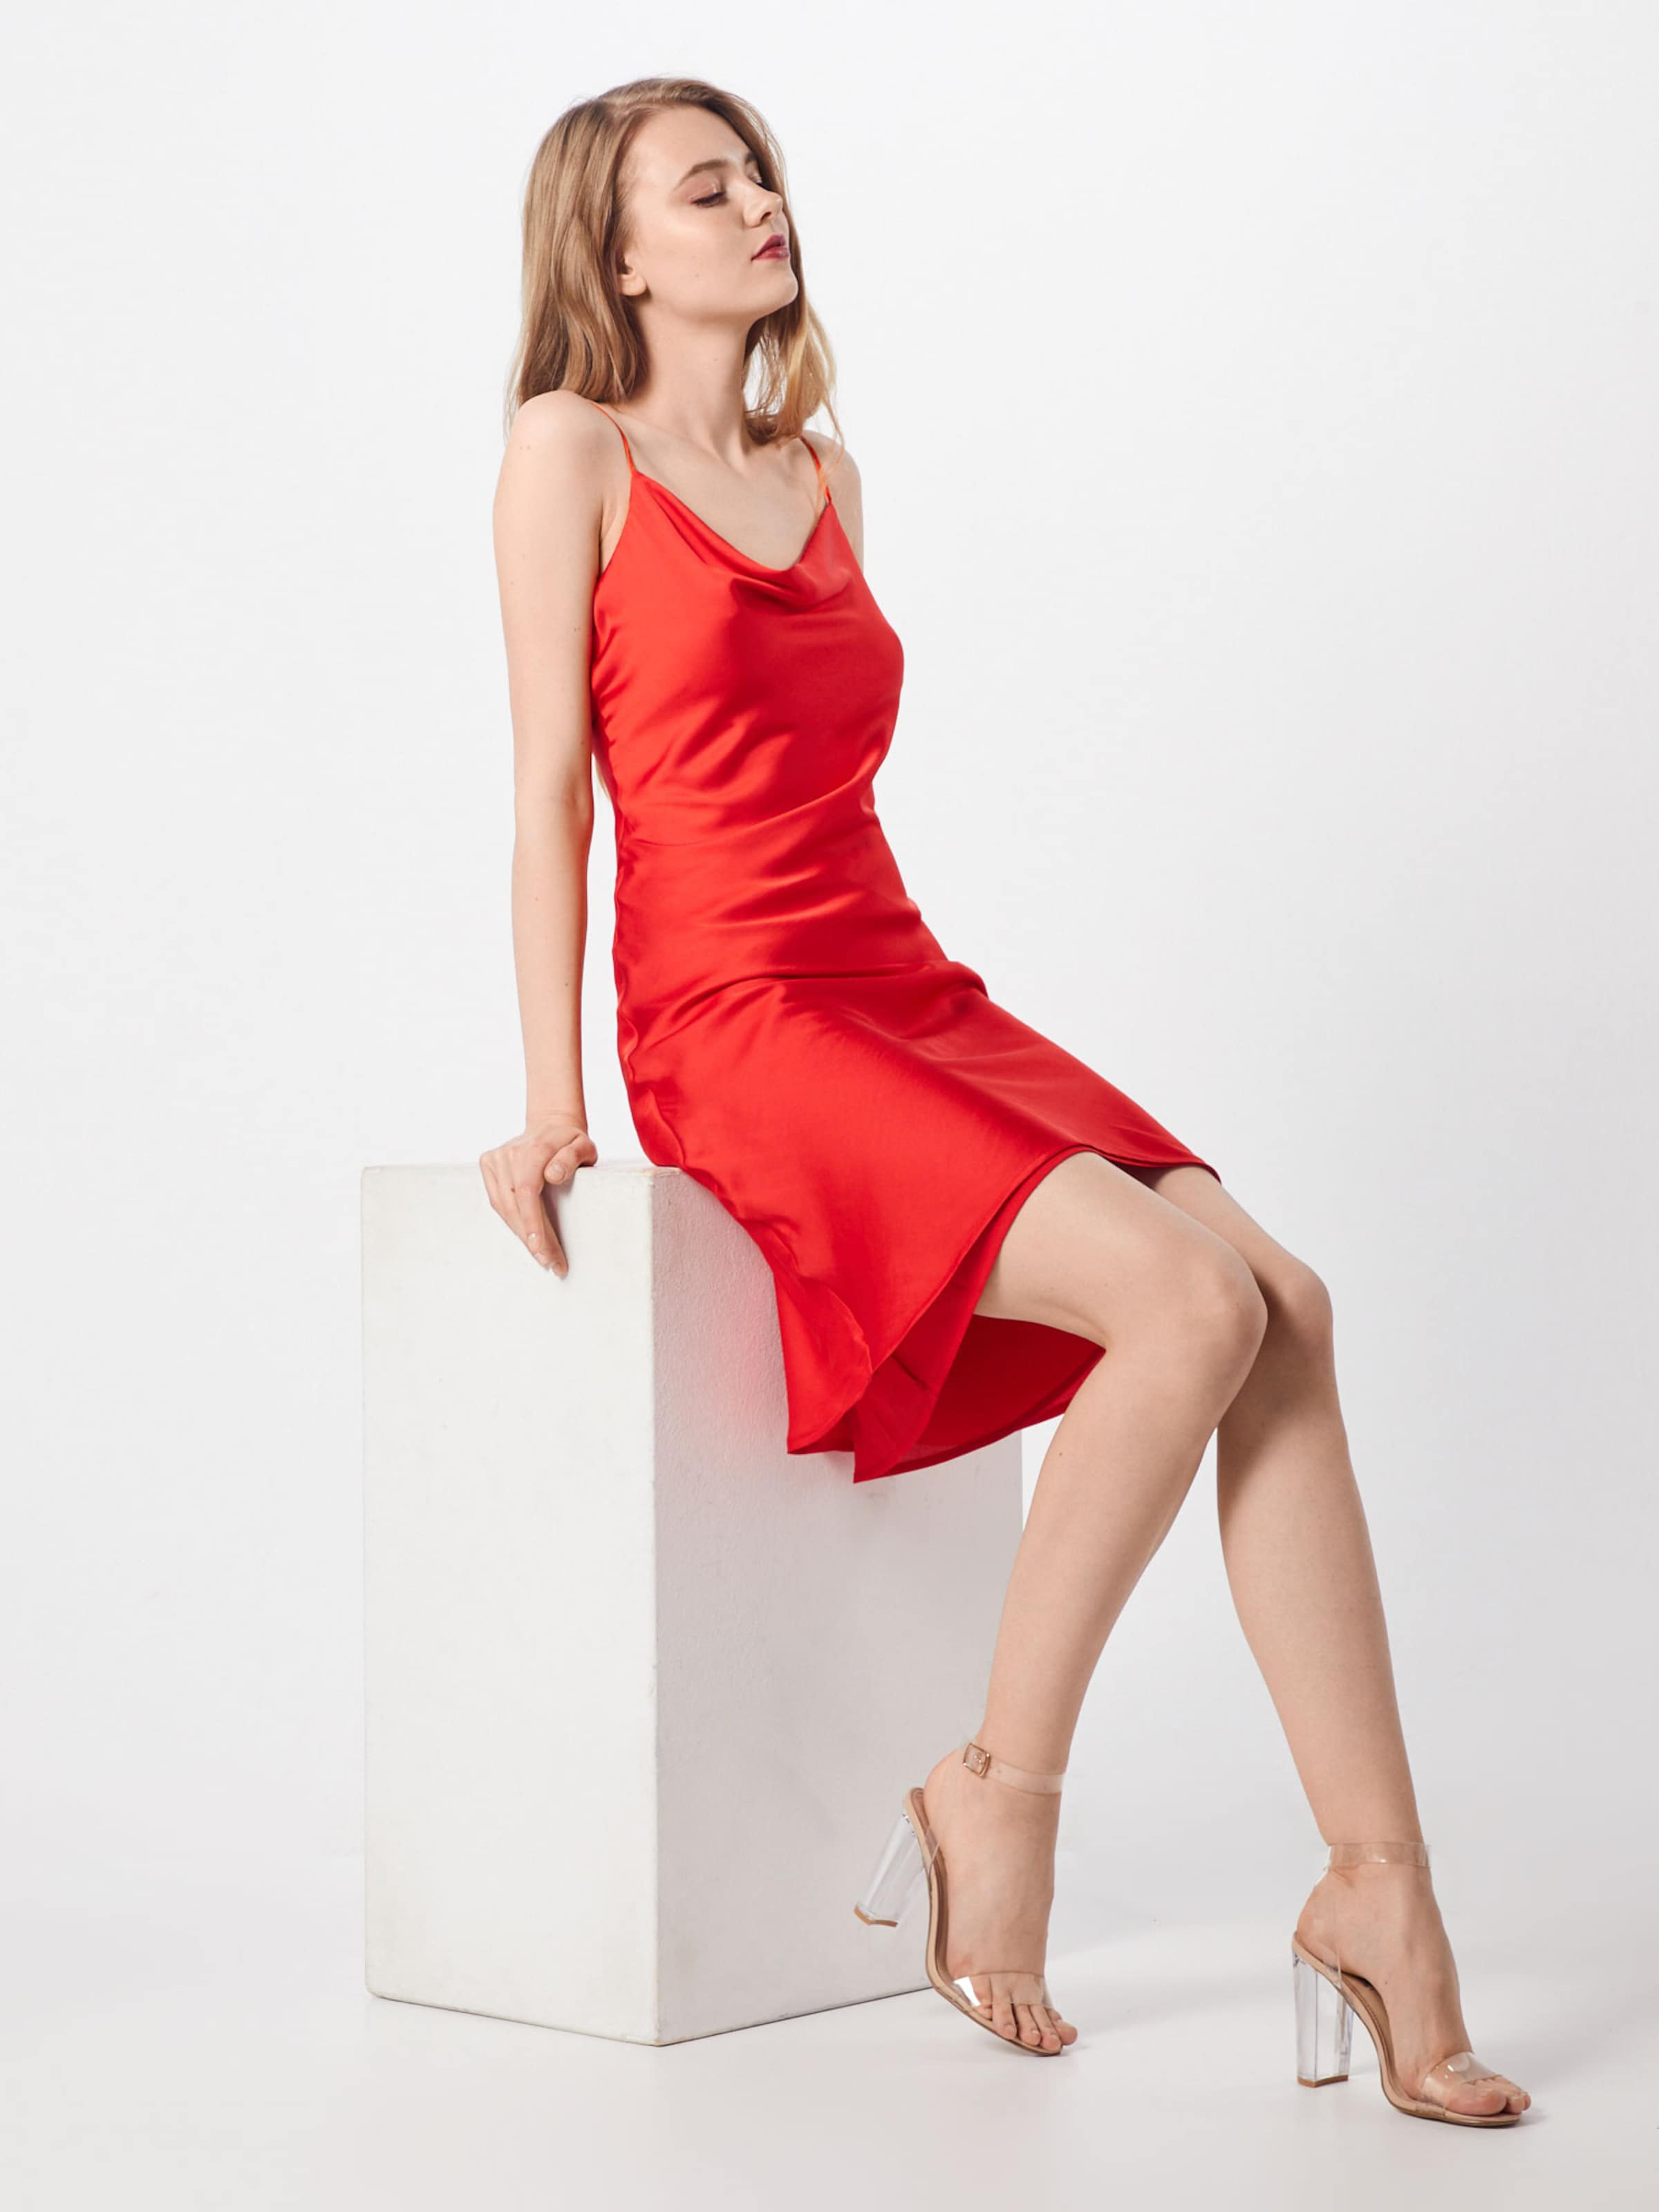 'slip En Robe Rouge Bardot Dress' wkuOZlPiTX